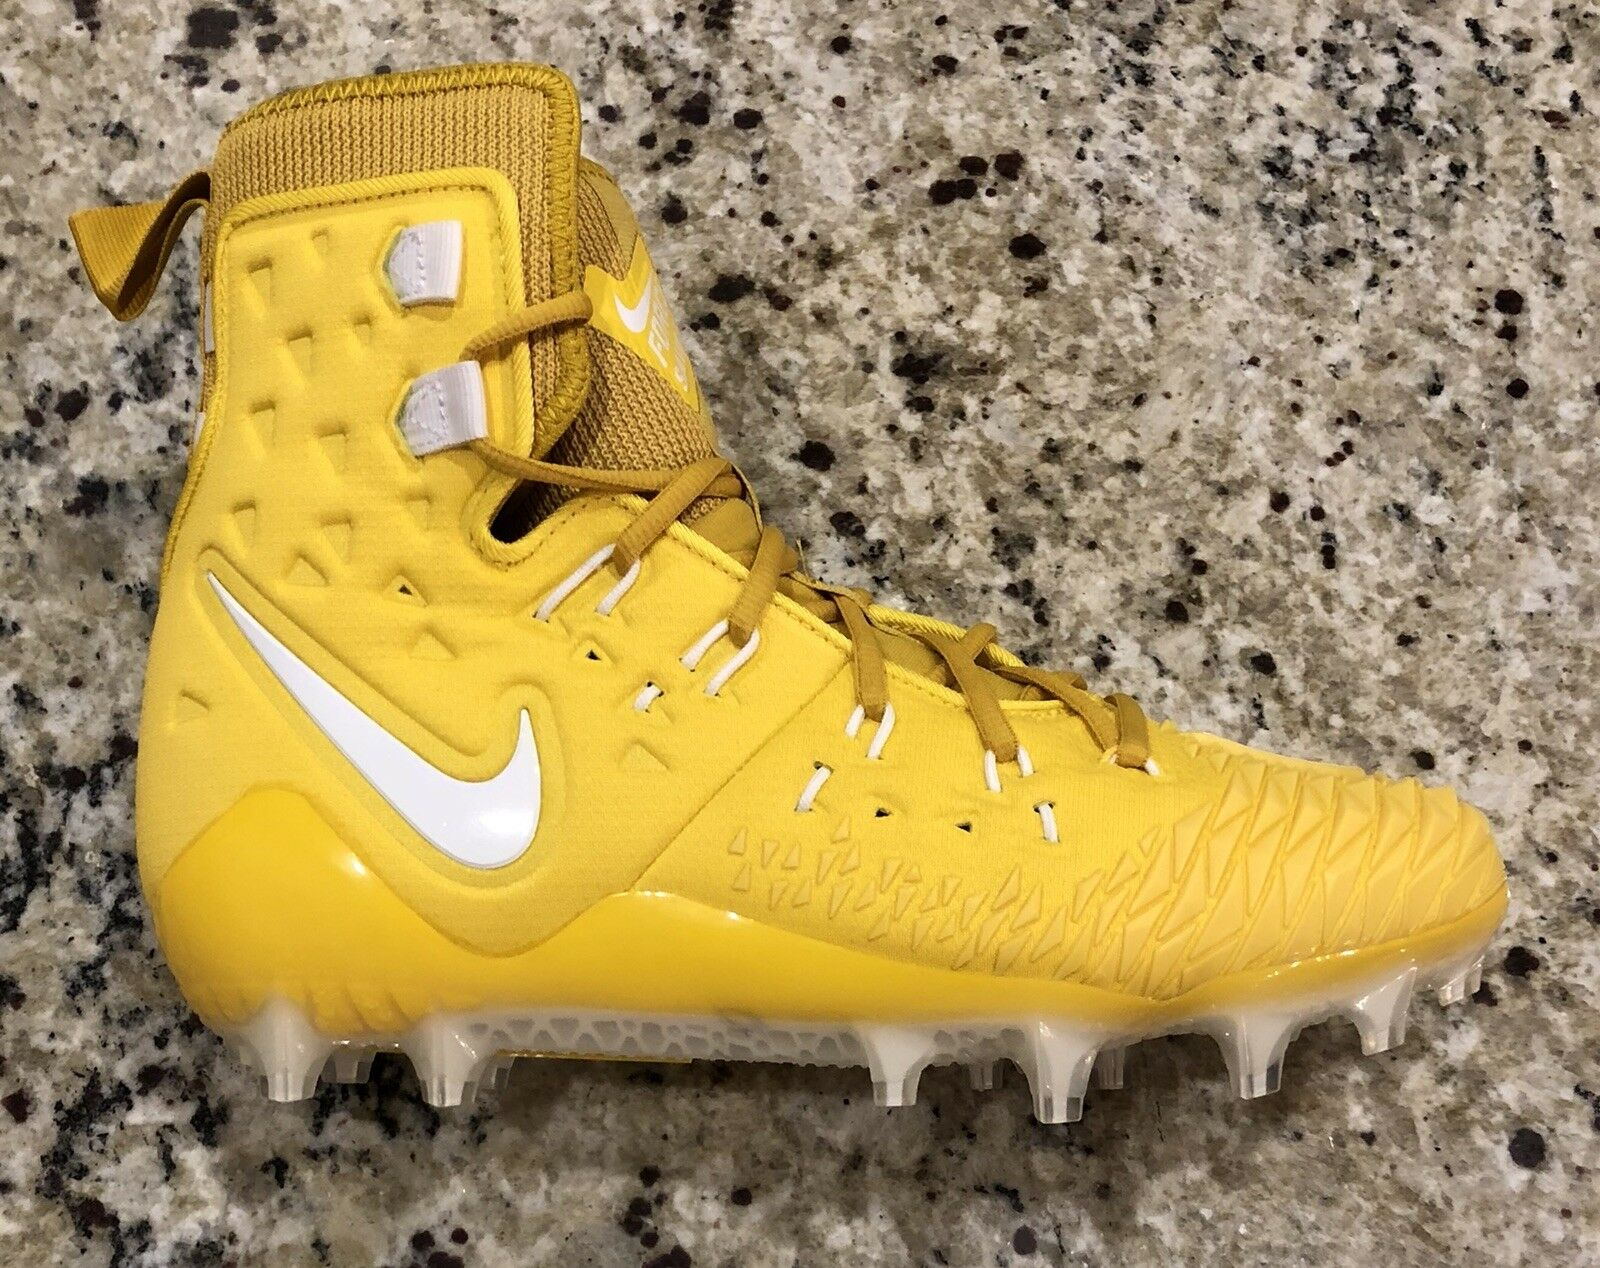 546ad53d0764d NEW MEN S NIKE ZOOM FORCE SAVAGE ELITE Football Cleats Size 10.5 TD ...